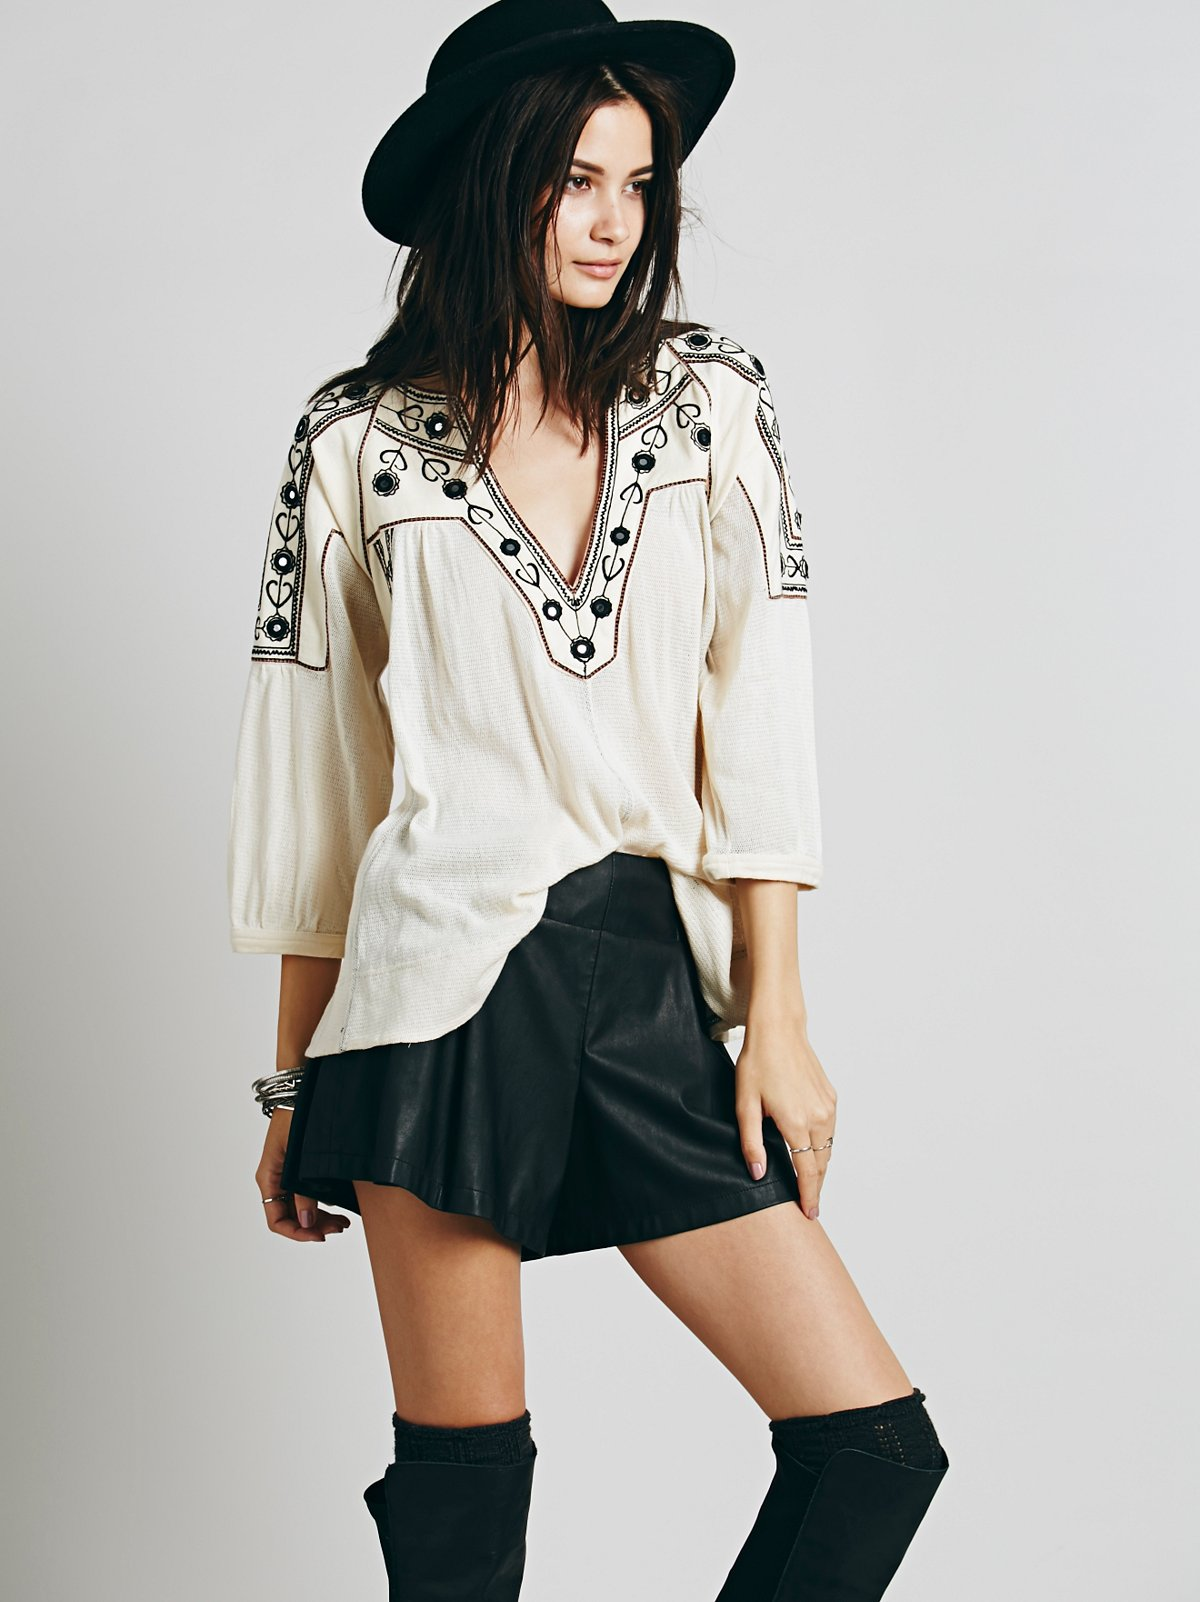 FP New Romantics Bohemia Blouse